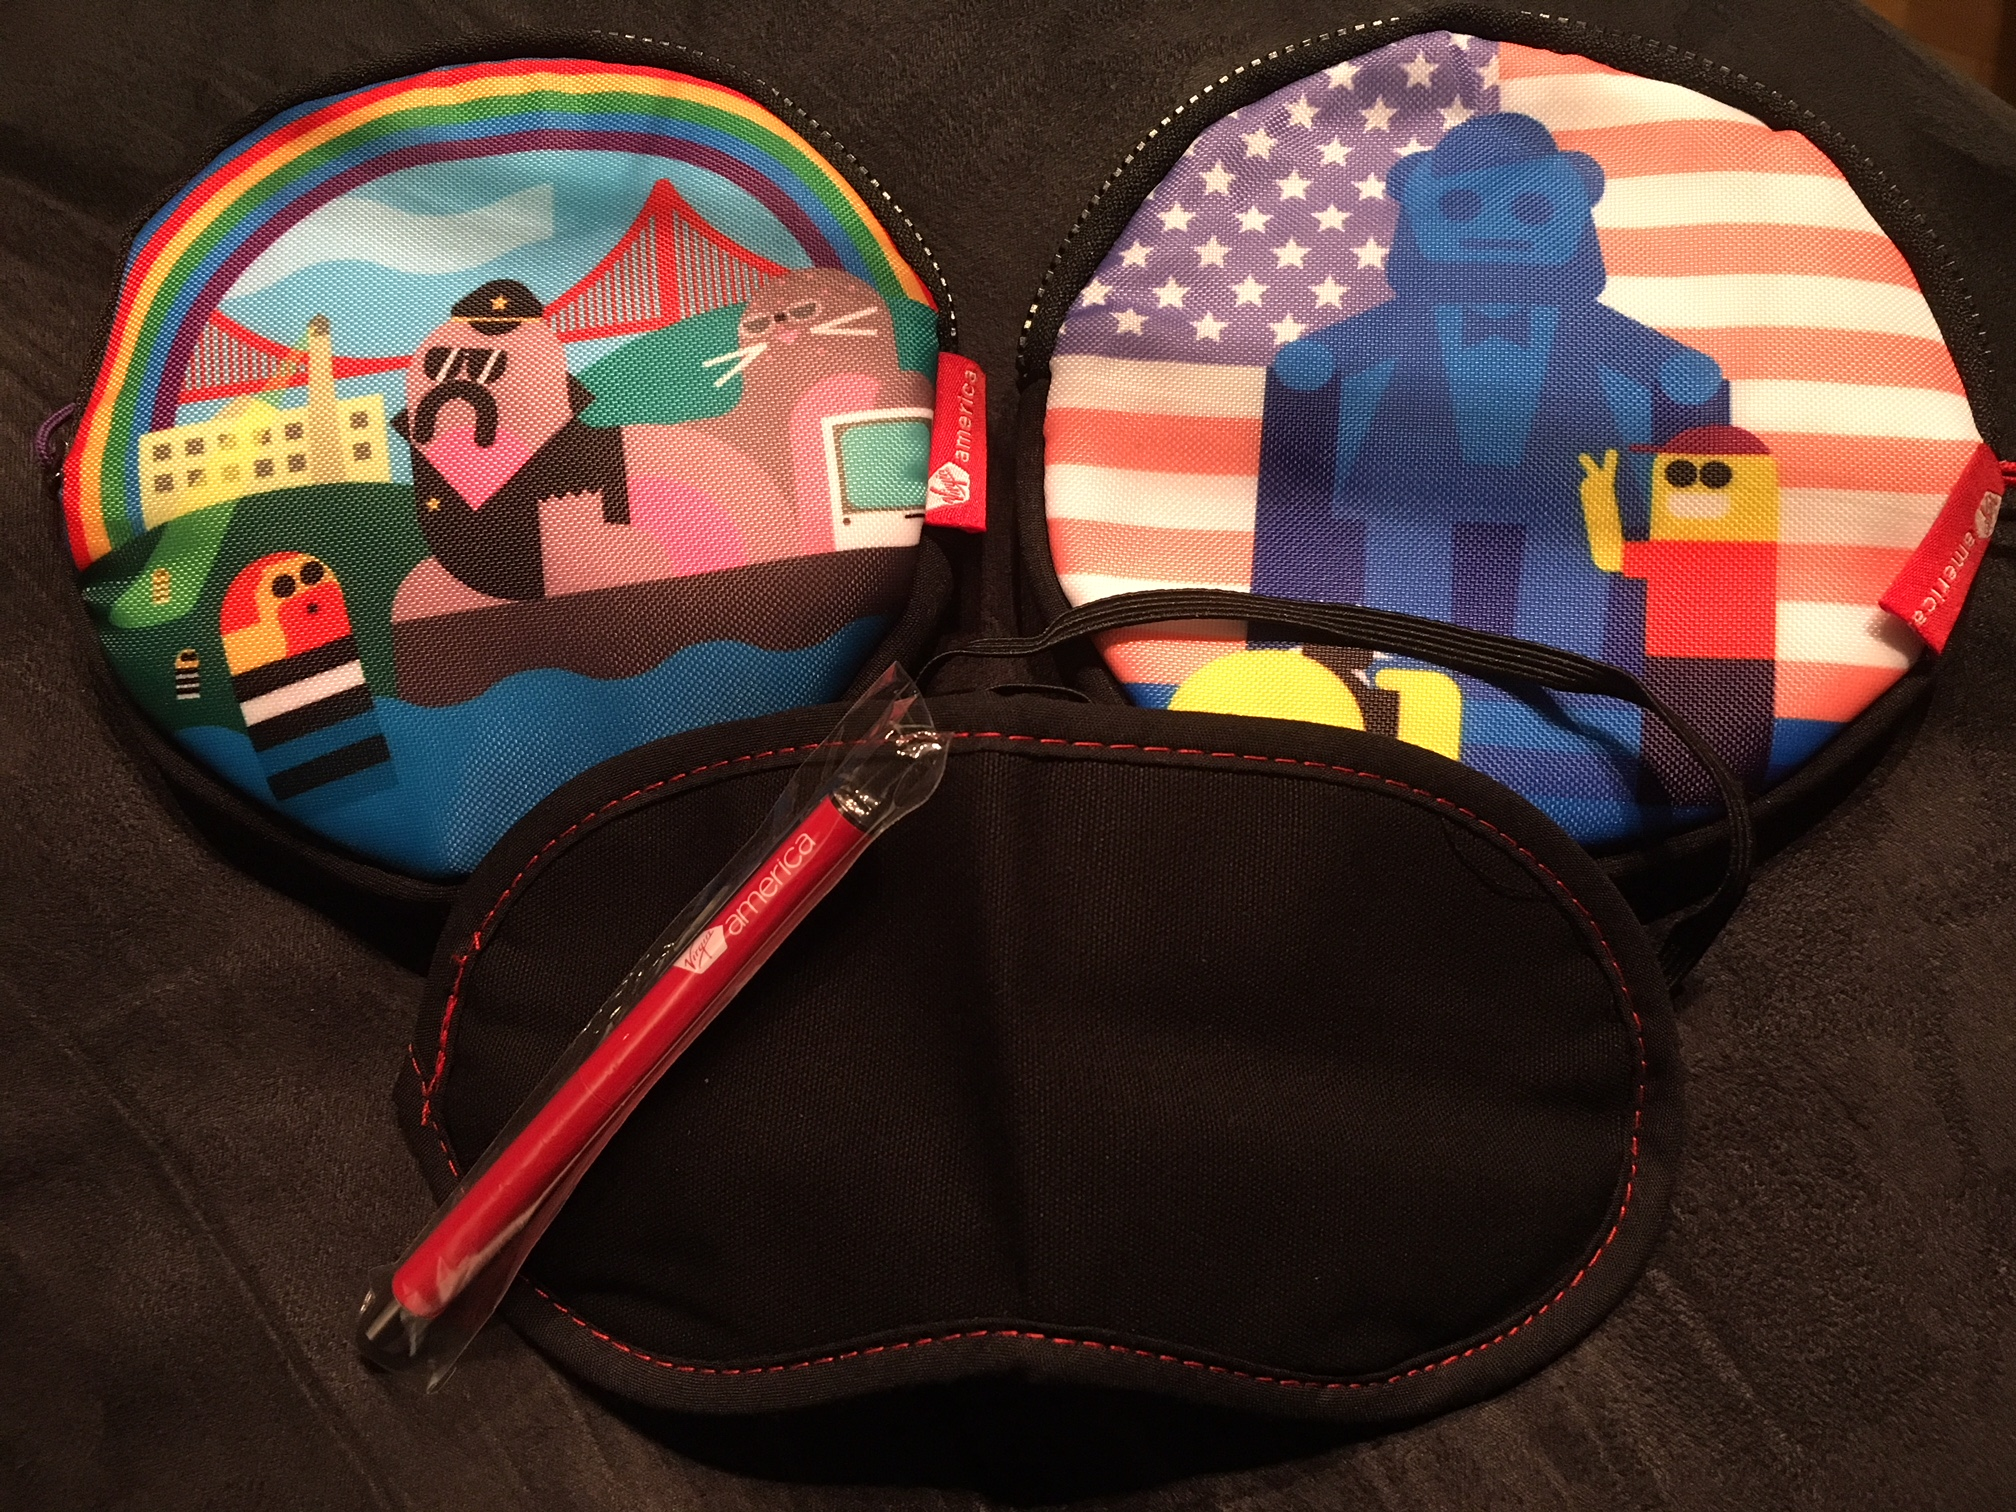 Virgin America First Class Amenity Kit